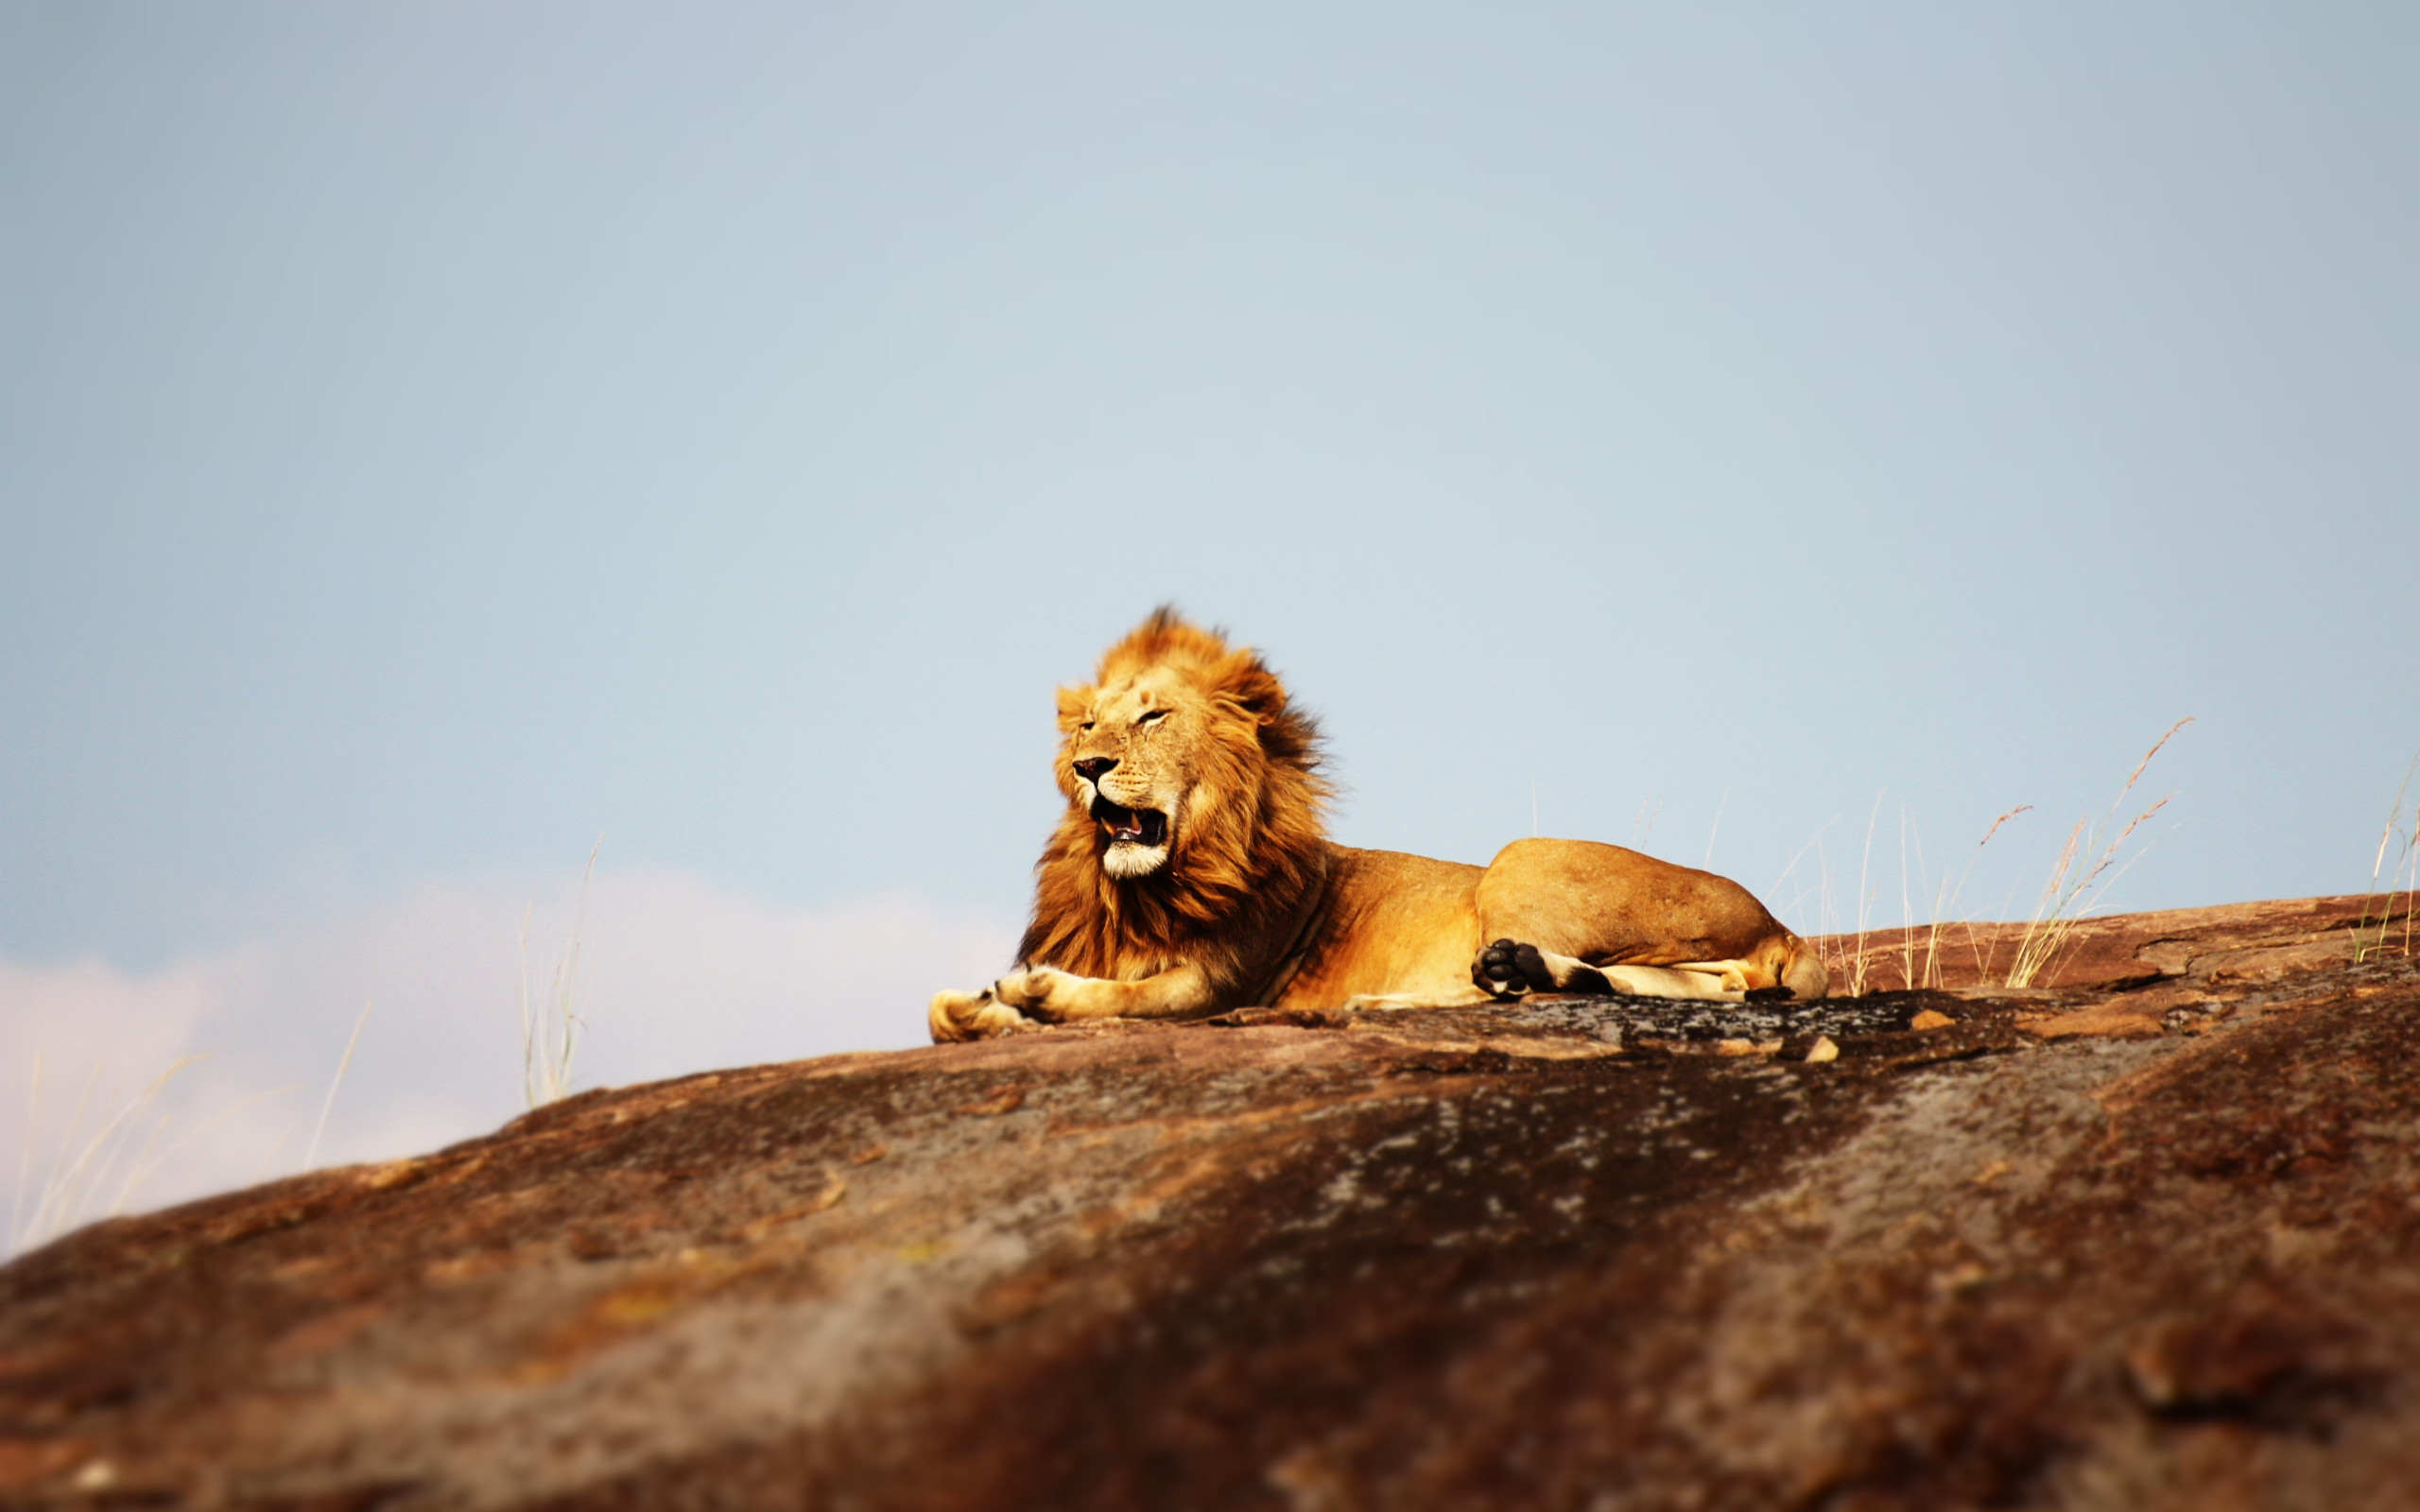 Lion in Serengeti National Park | 2560x1600 wallpaper